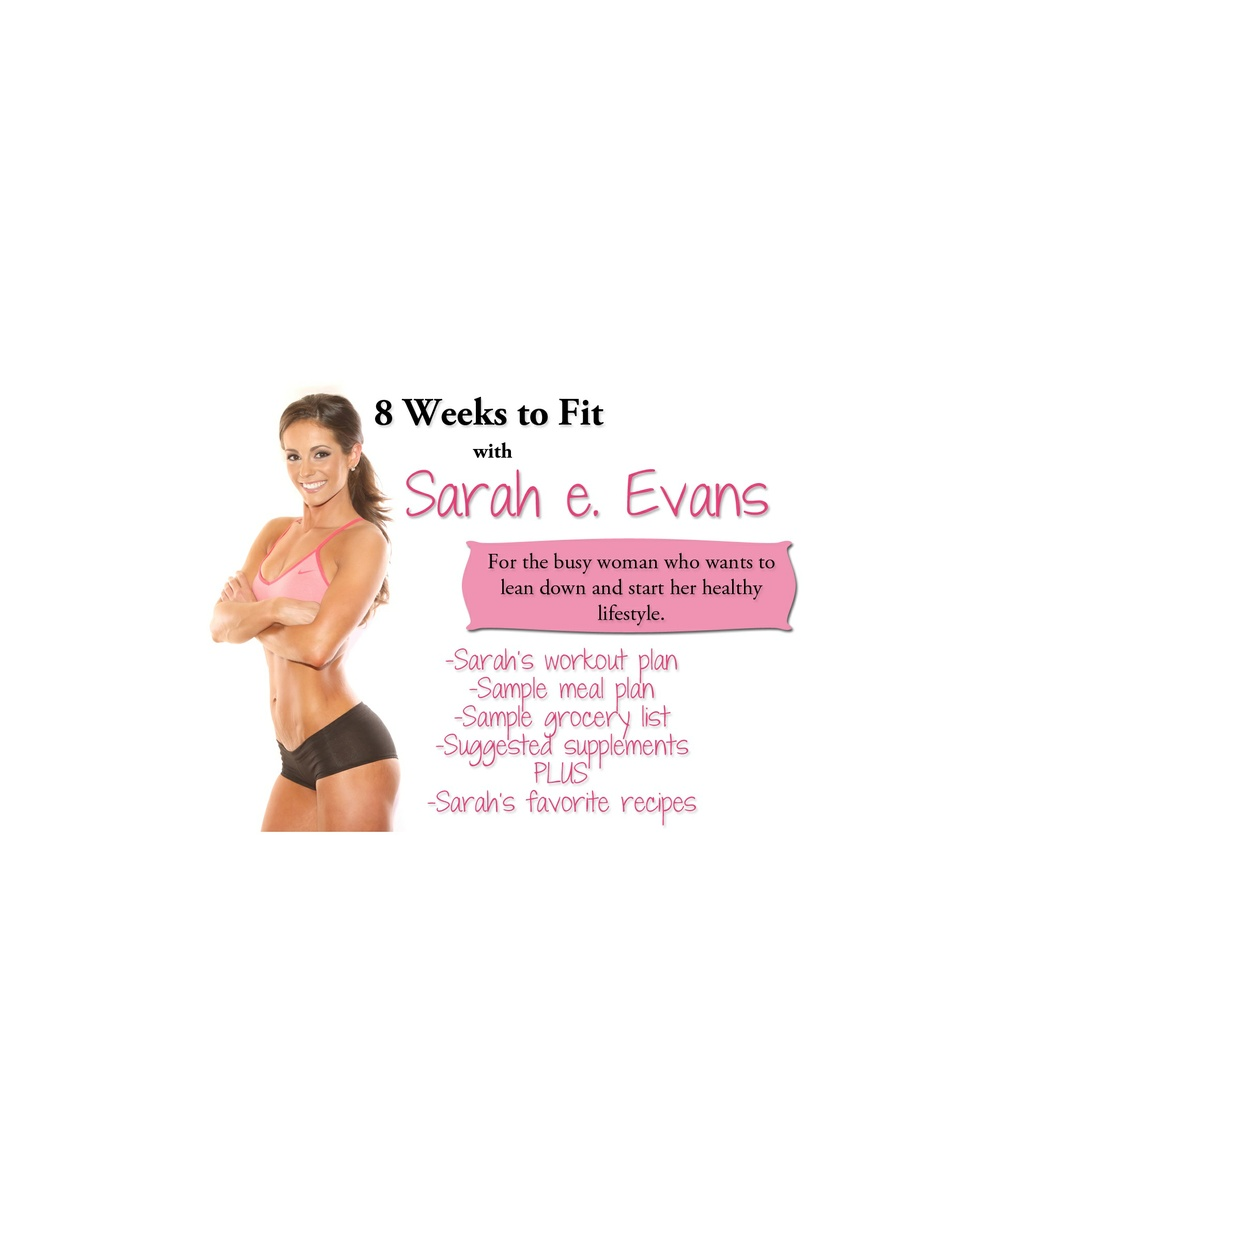 8 Weeks to Fit with Sarah e. Evans